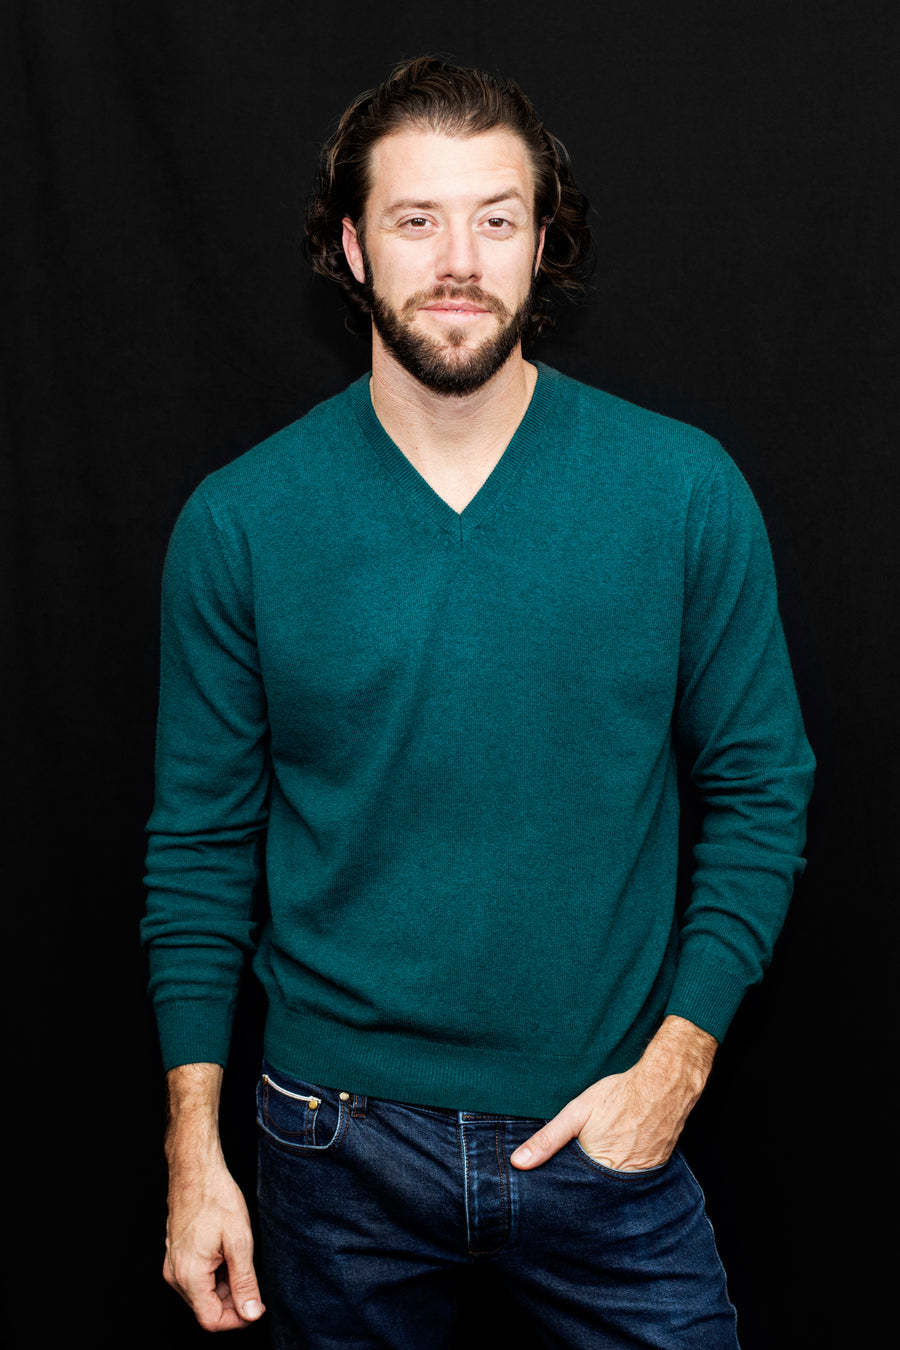 Mens Cashmere V-Neck Sweater - Teal